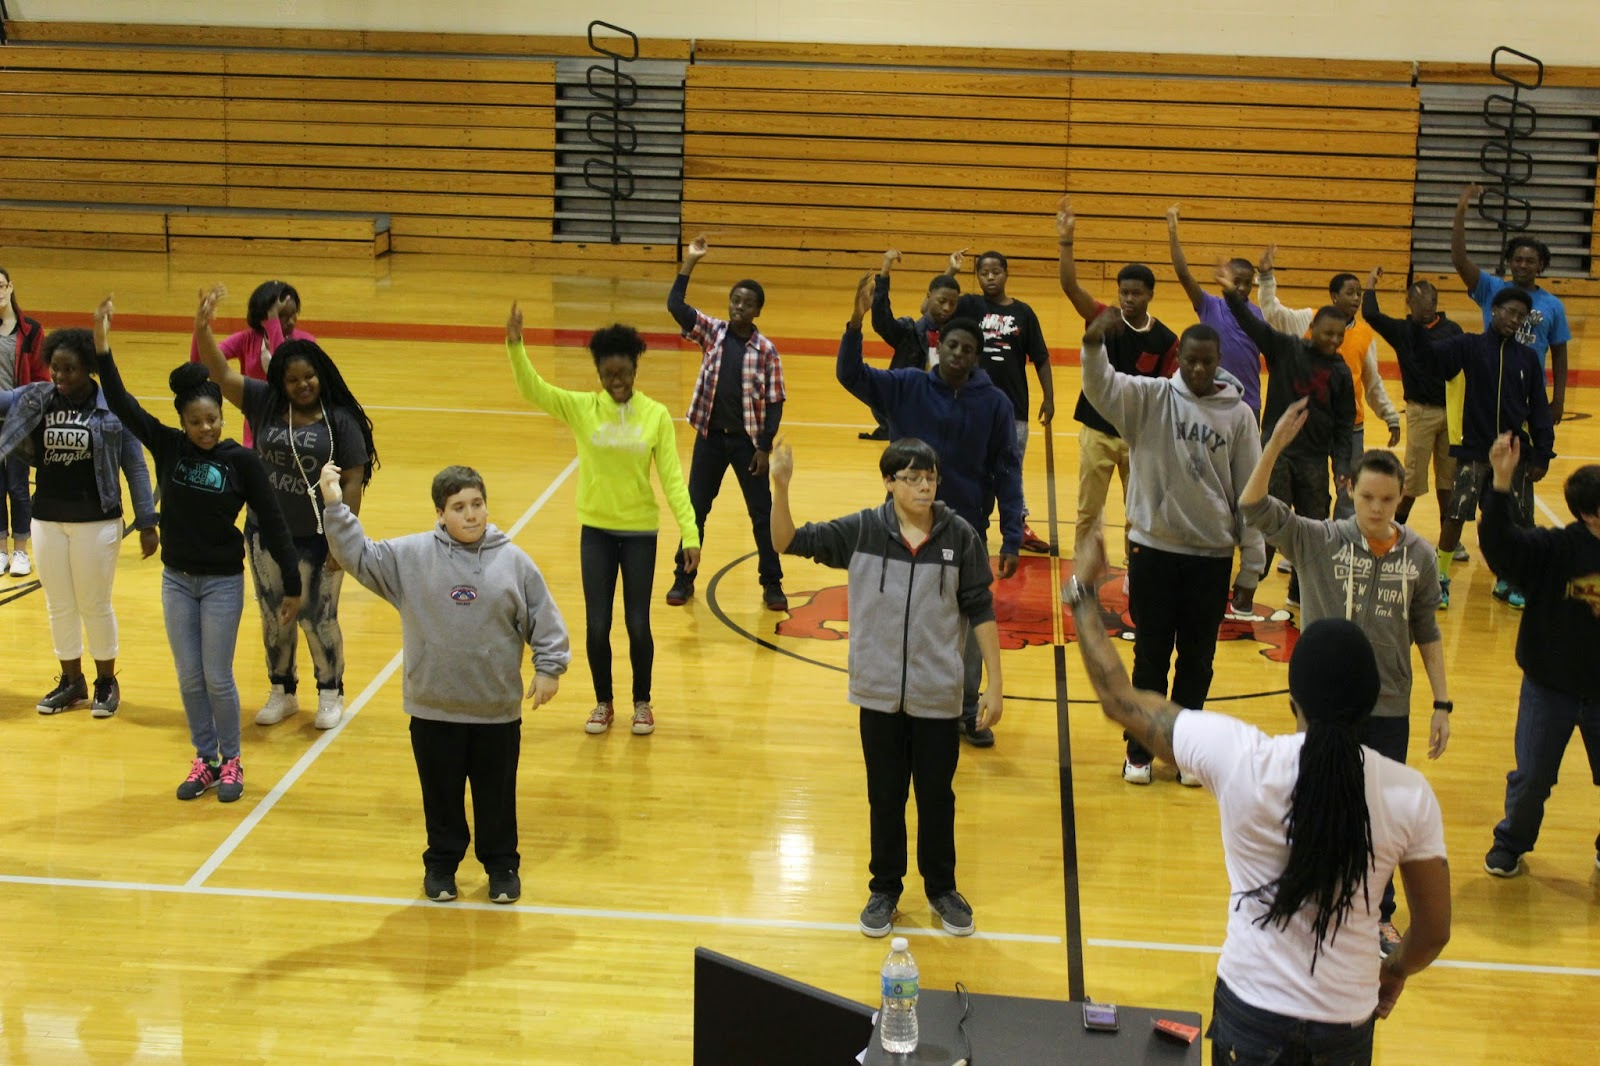 In Preparation For Stomp Dau0027 Yard, Vincent Johnson, A Hip Hop And Dance  Instructor Was Brought In. The Students, Teachers, Administrators, And  Visitors ...